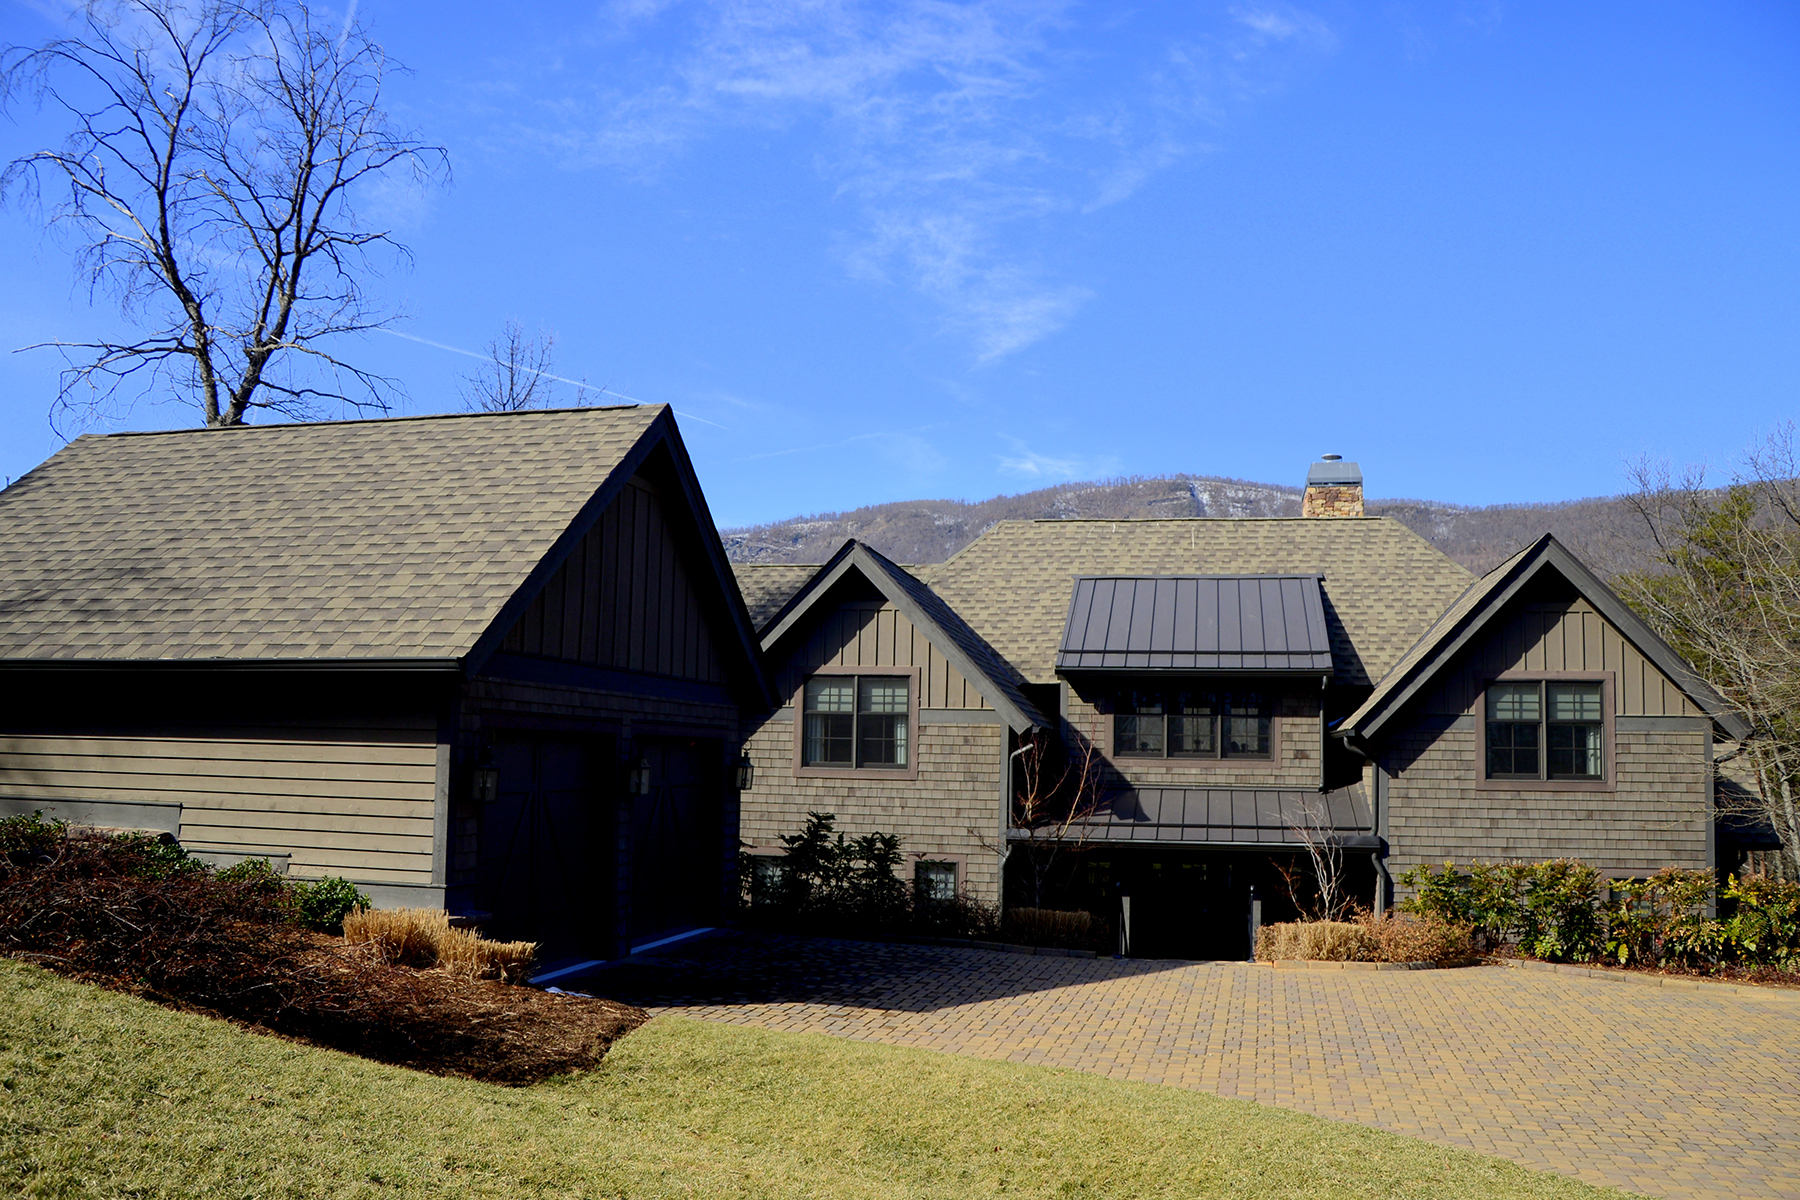 Single Family Home for Sale at MILL SPRING - BRIGHT'S CREEK 995 E Deep Gap Farm Rd, Mill Spring, North Carolina 28756 United States